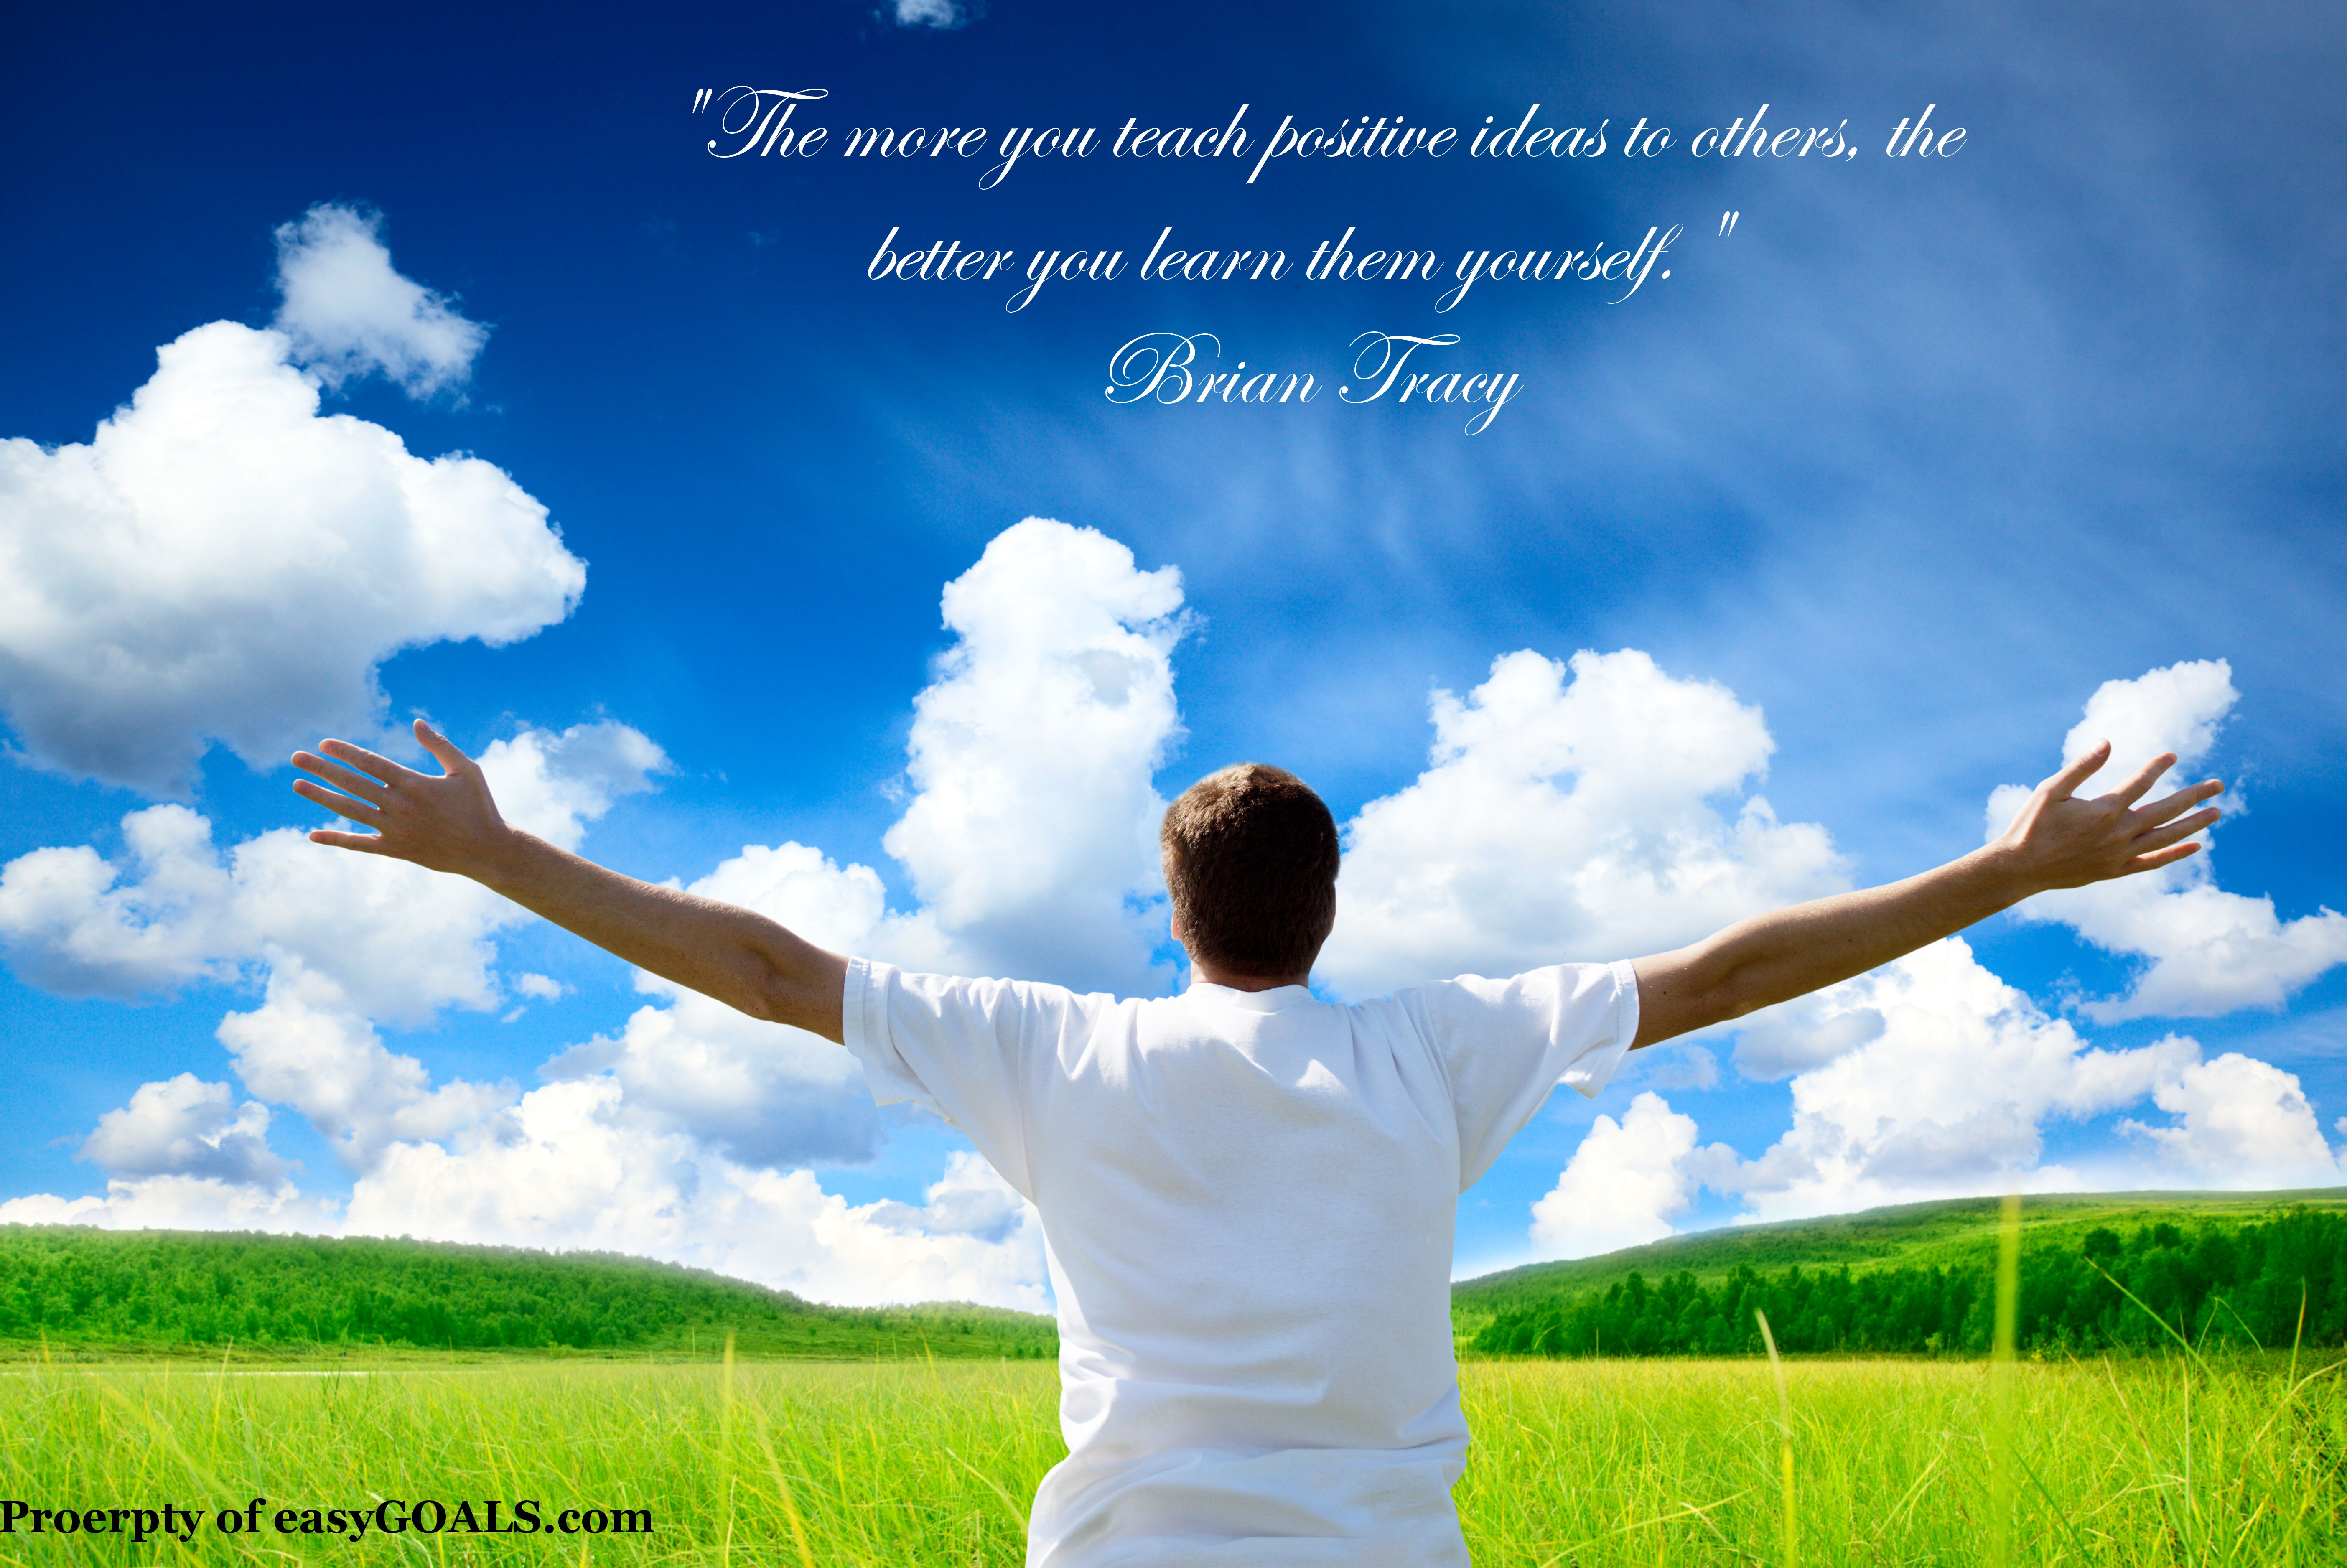 """""""The more you teach positive ideas to others, the better you learn them yourself."""" Brian Tracy #easygoals 